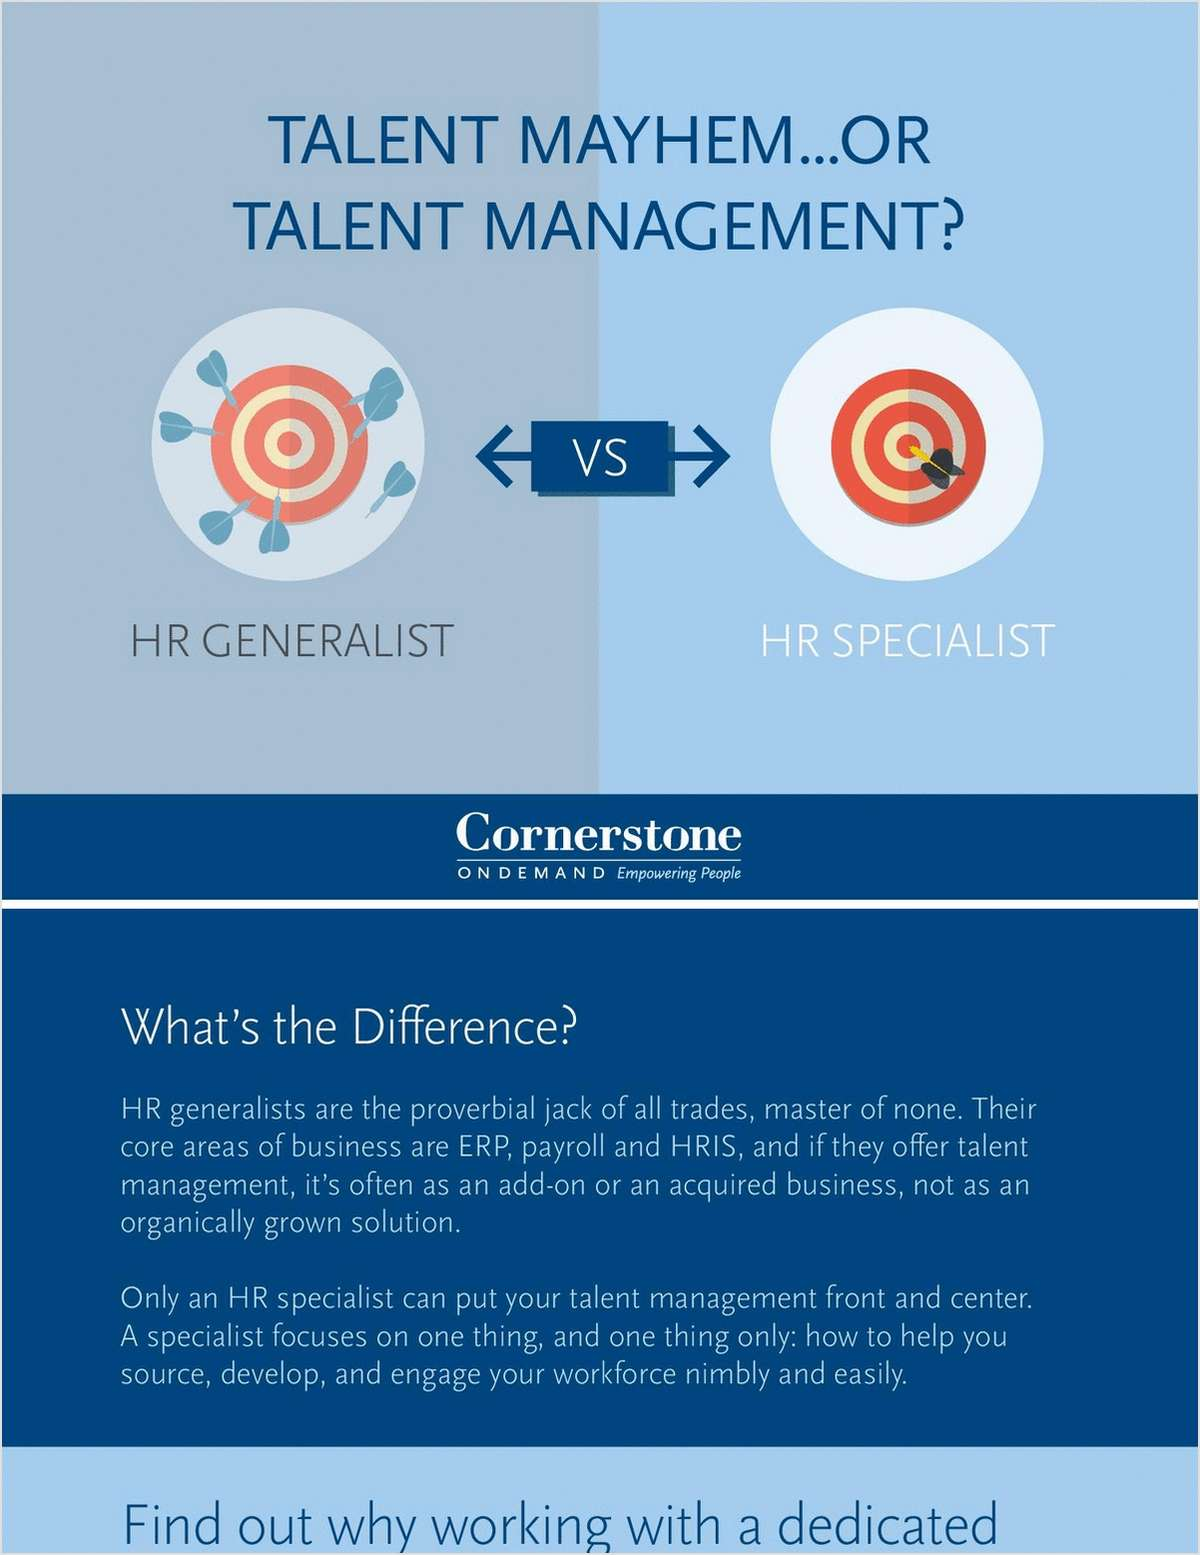 Talent Mayhem…OR Talent Management?